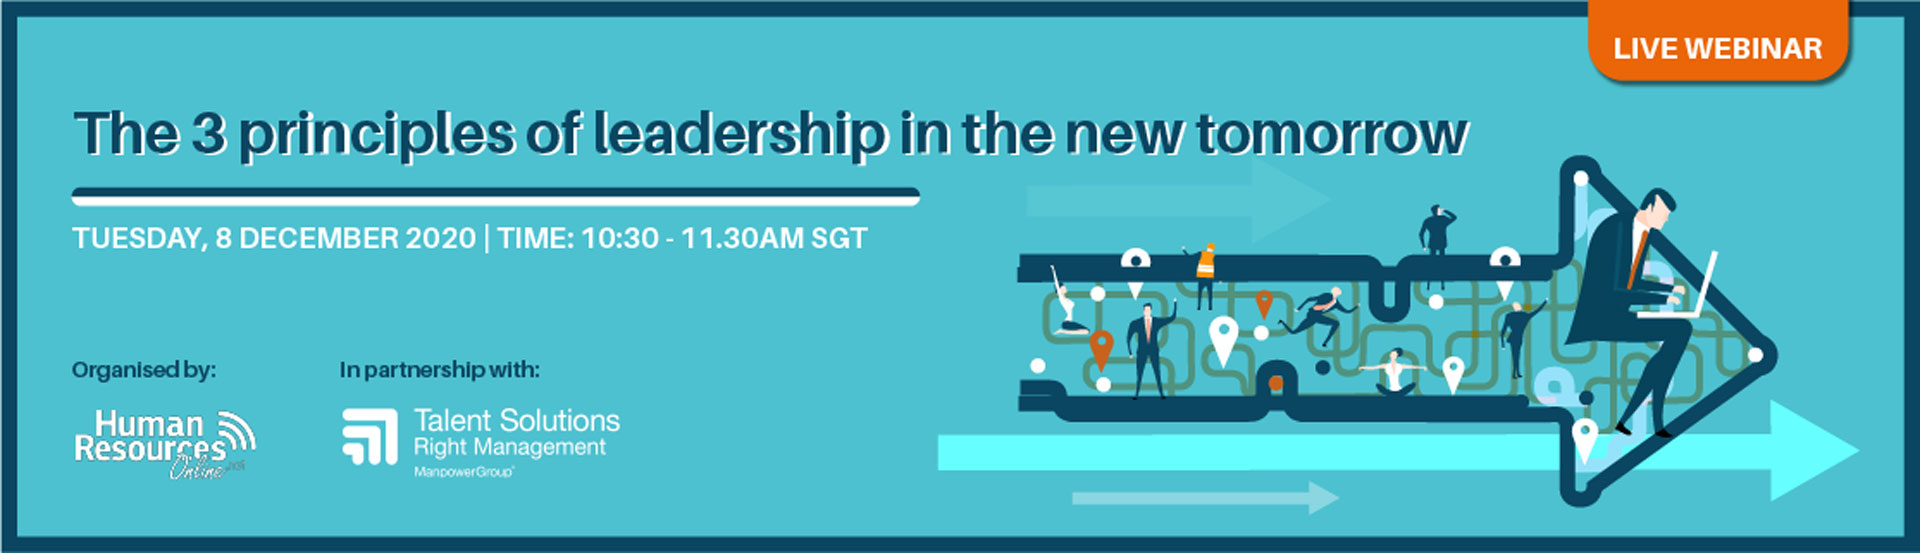 HROxTalentmanagement-the-3-principles-of-leadership-in-the-new-tomorrow